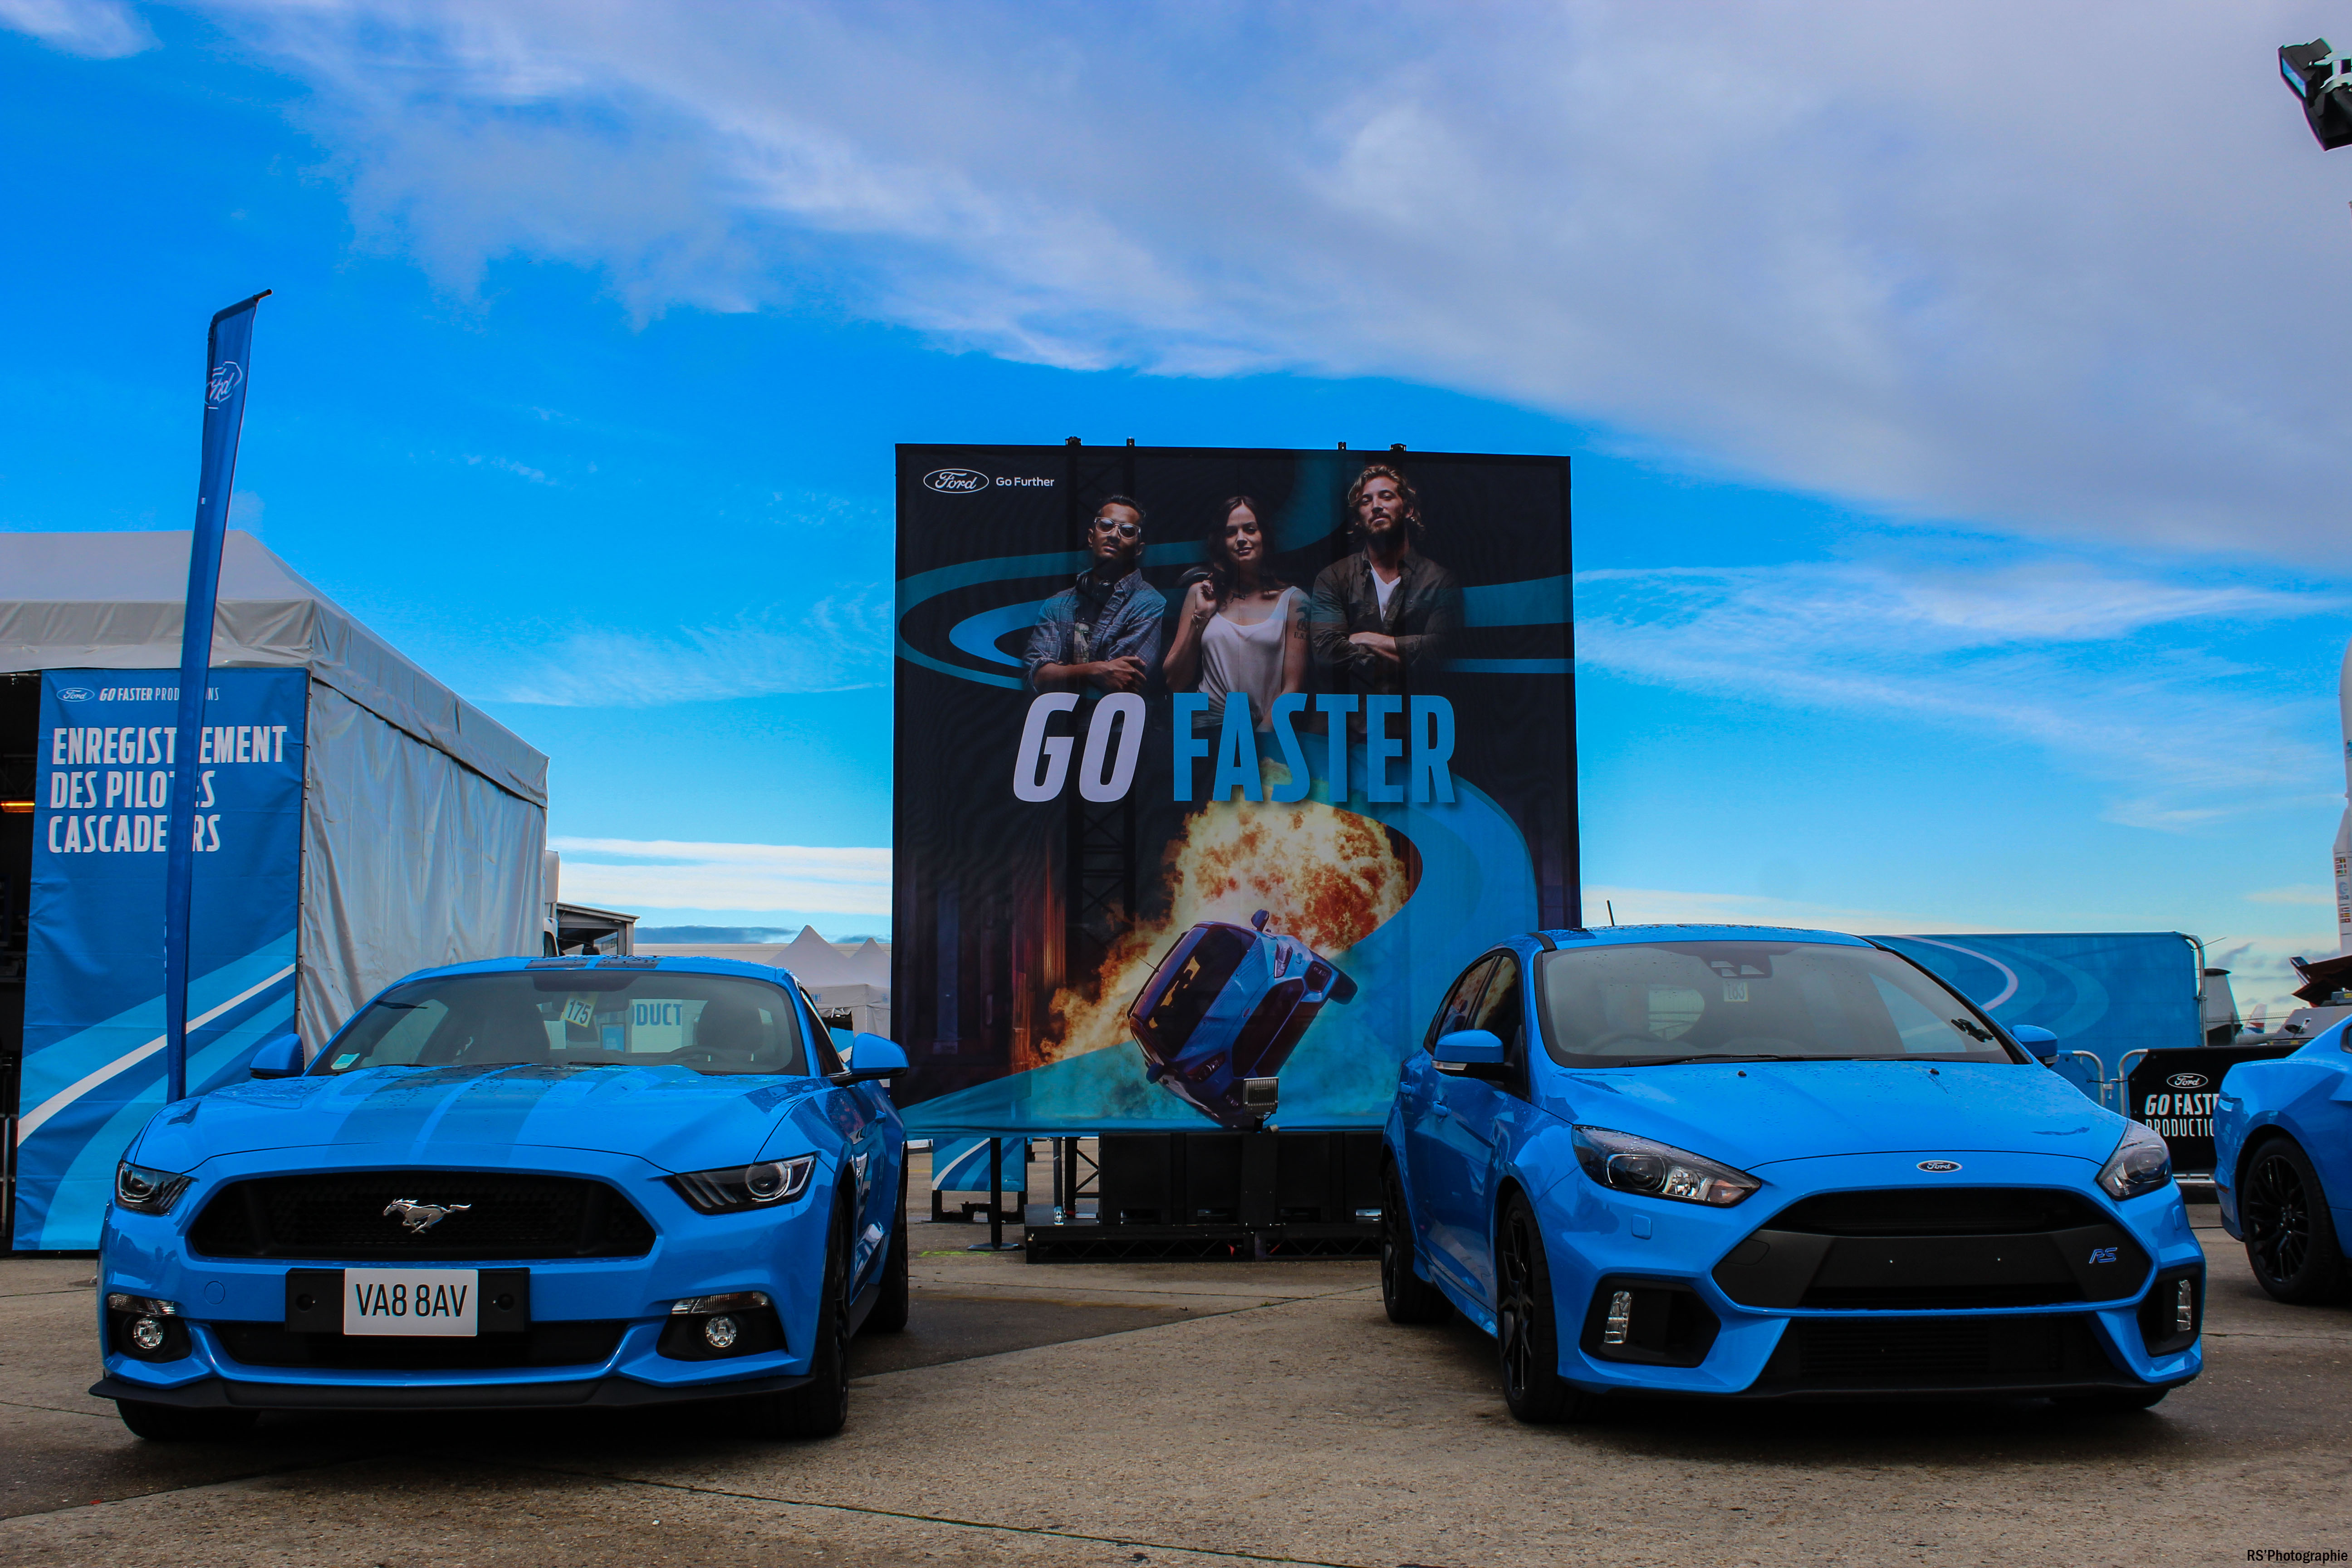 gofaster3-opération-go-faster-focus-rs-mustang-avant-front-Arnaud Demasier-RSPhotographie